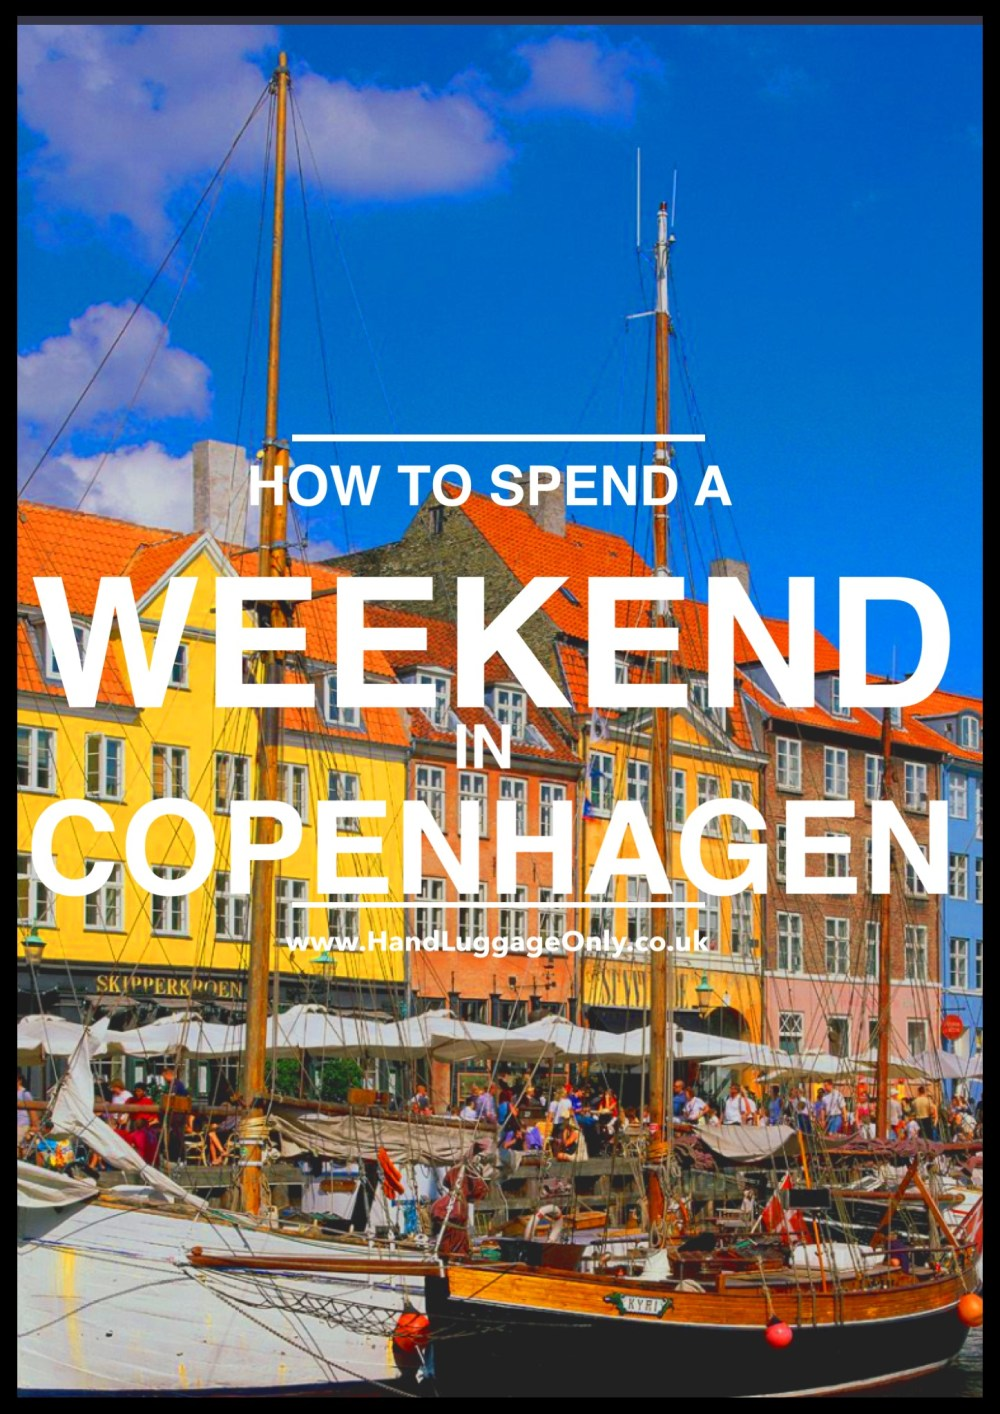 How To Spend a Weekend in Copenhagen!